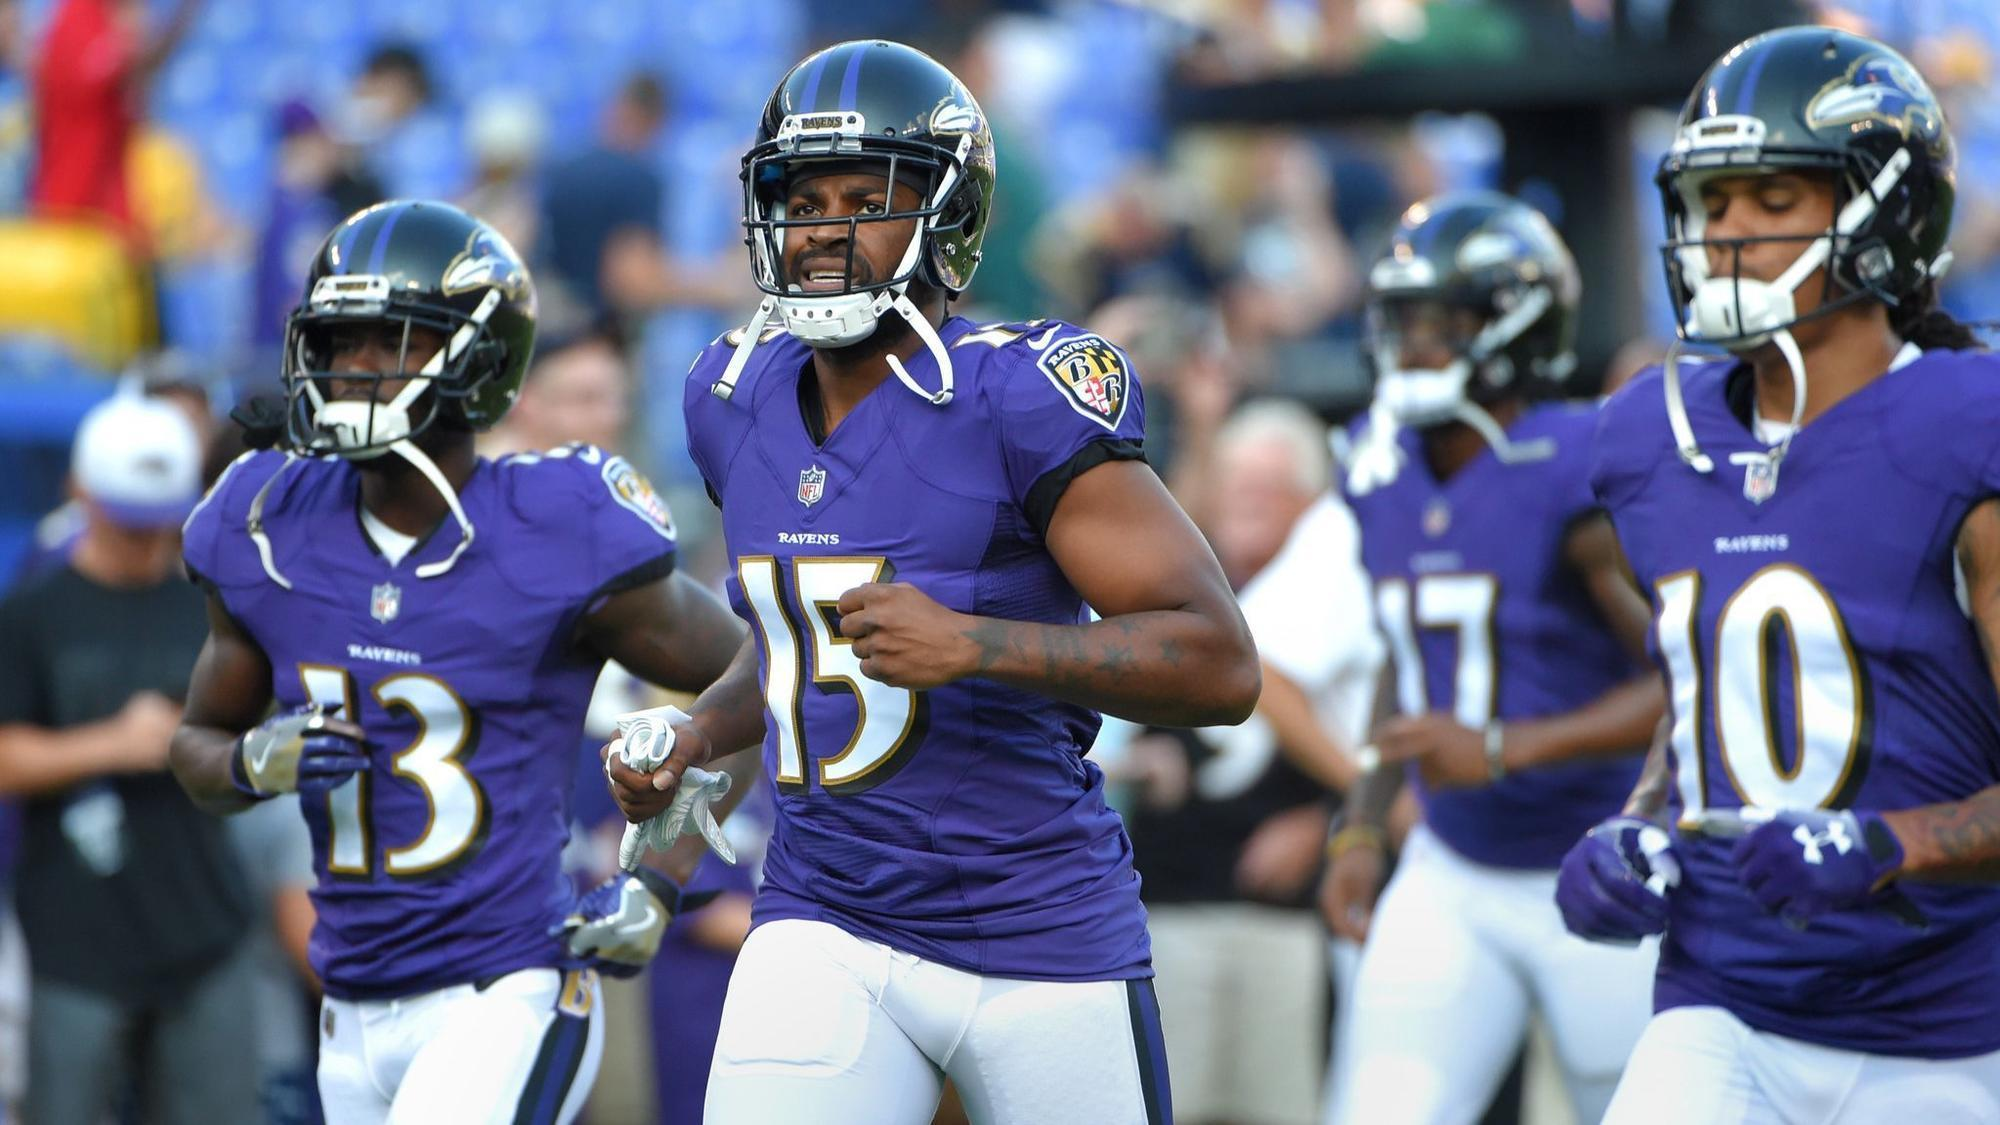 Bs-sp-ravens-new-receivers-20180820